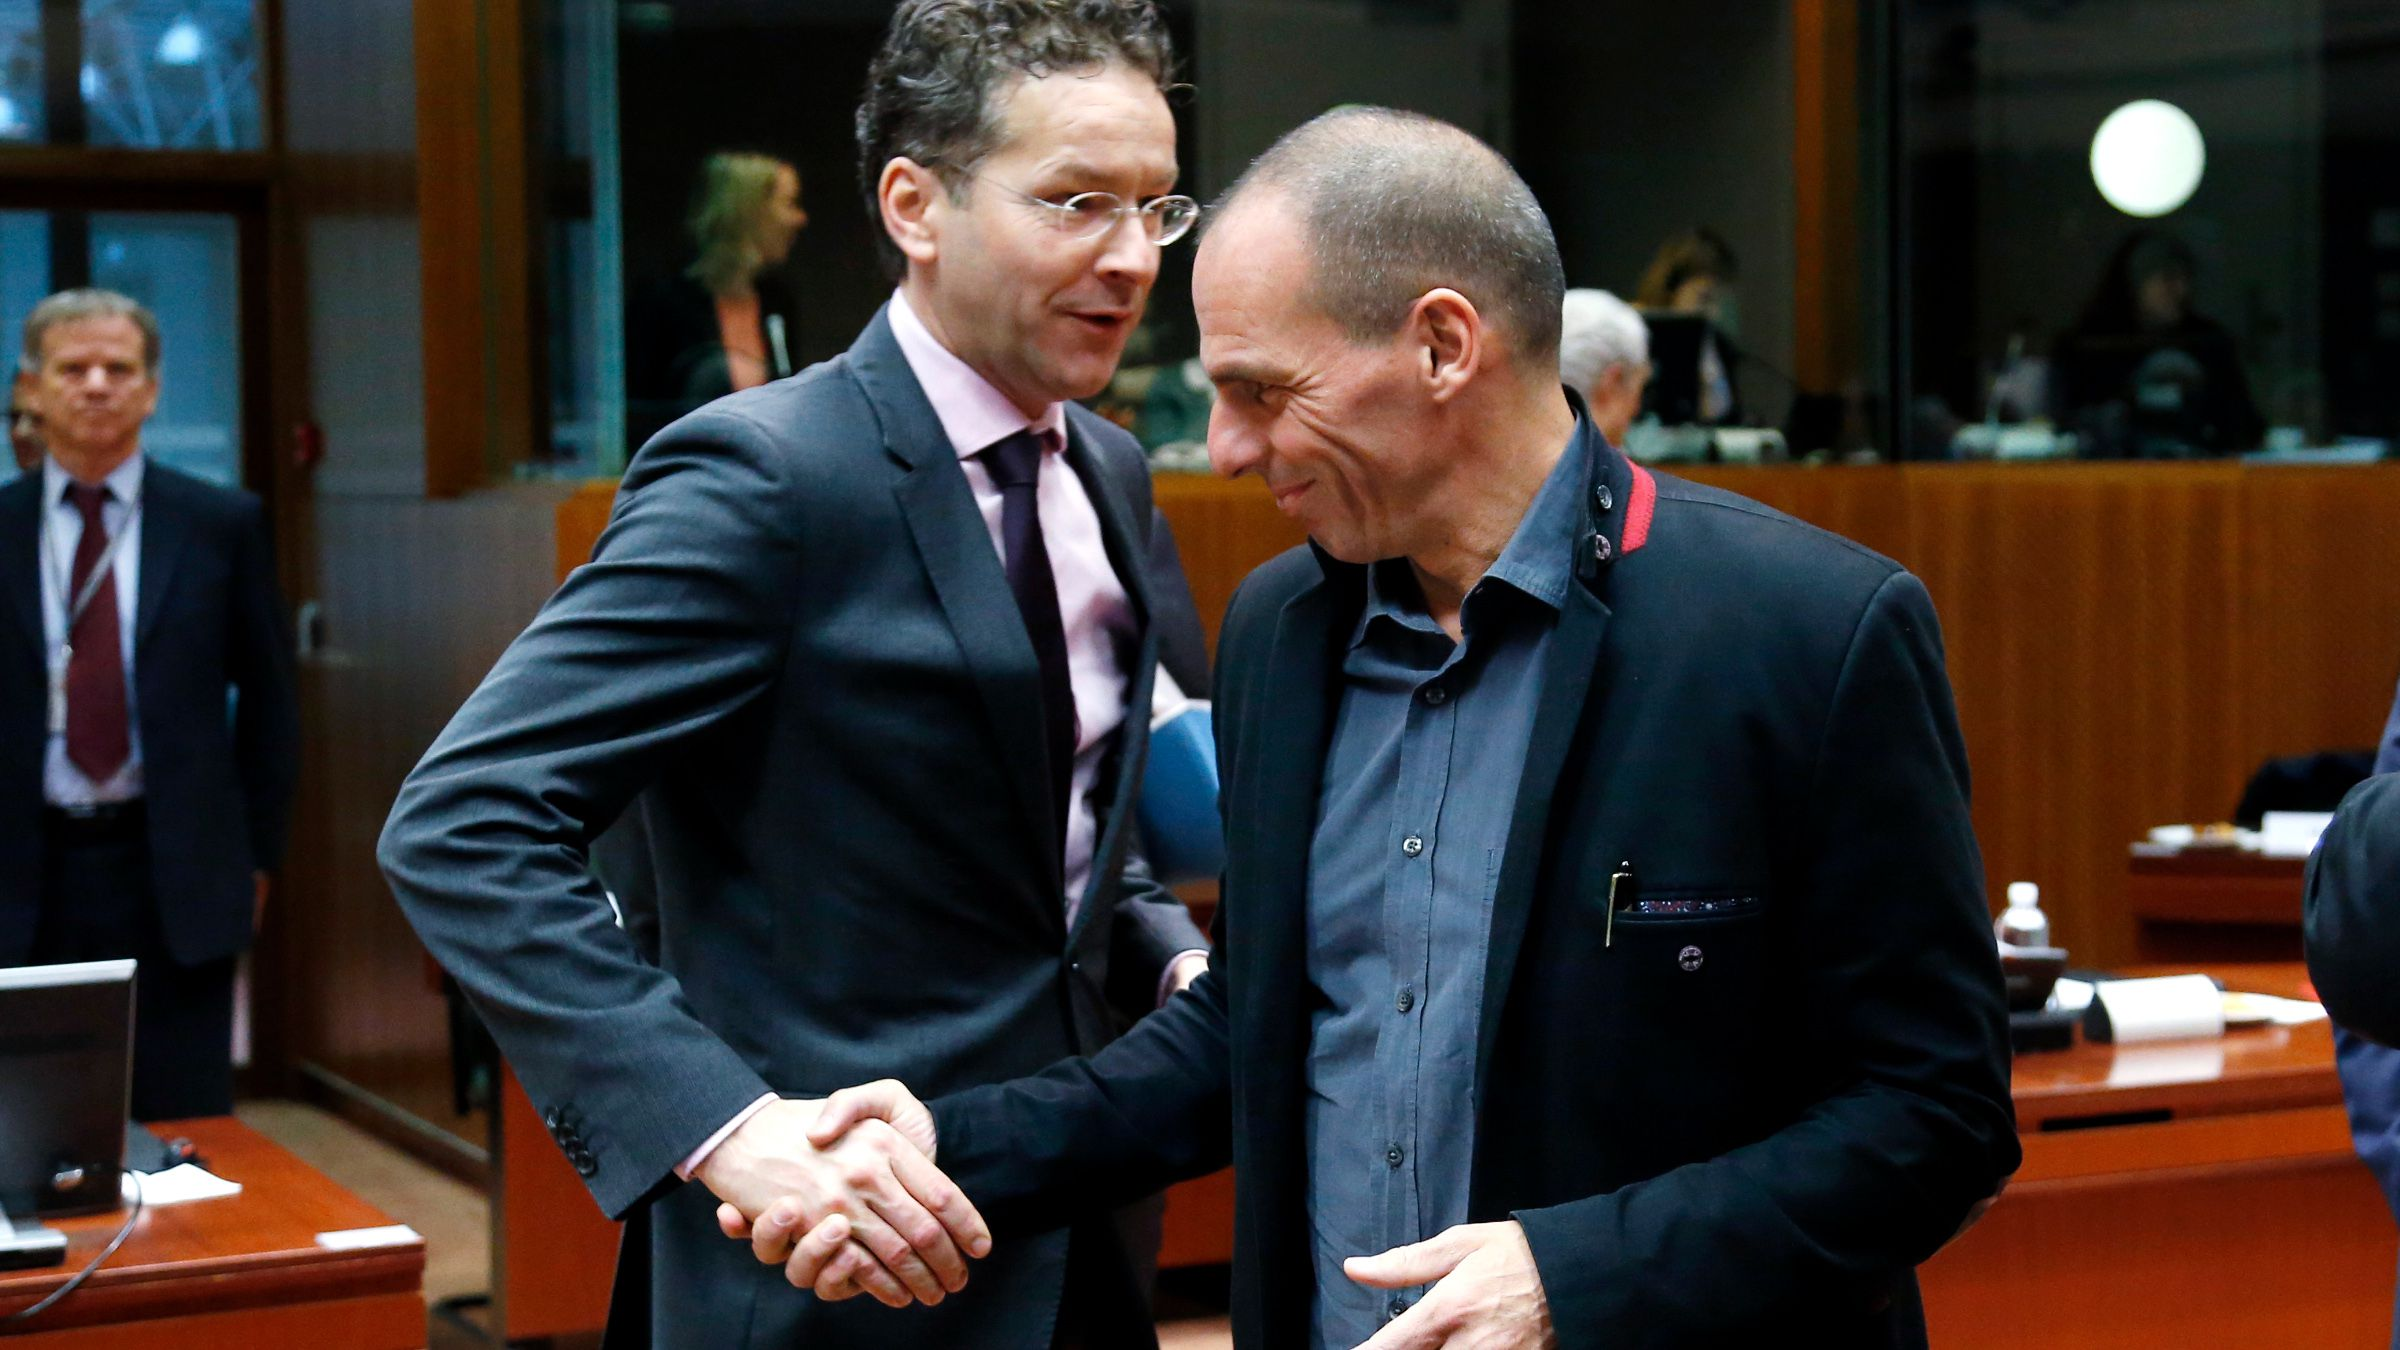 """Dutch Finance Minister and Eurogroup chairman Jeroen Dijsselbloem shakes hands with Greek Finance Minister Yanis Varoufakis (R) during an European Union finance ministers meeting in Brussels February 17, 2015. The European Union will continue working on Greece's debt problems to achieve """"a very good outcome"""" for average Europeans, Varoufakis said on Tuesday."""